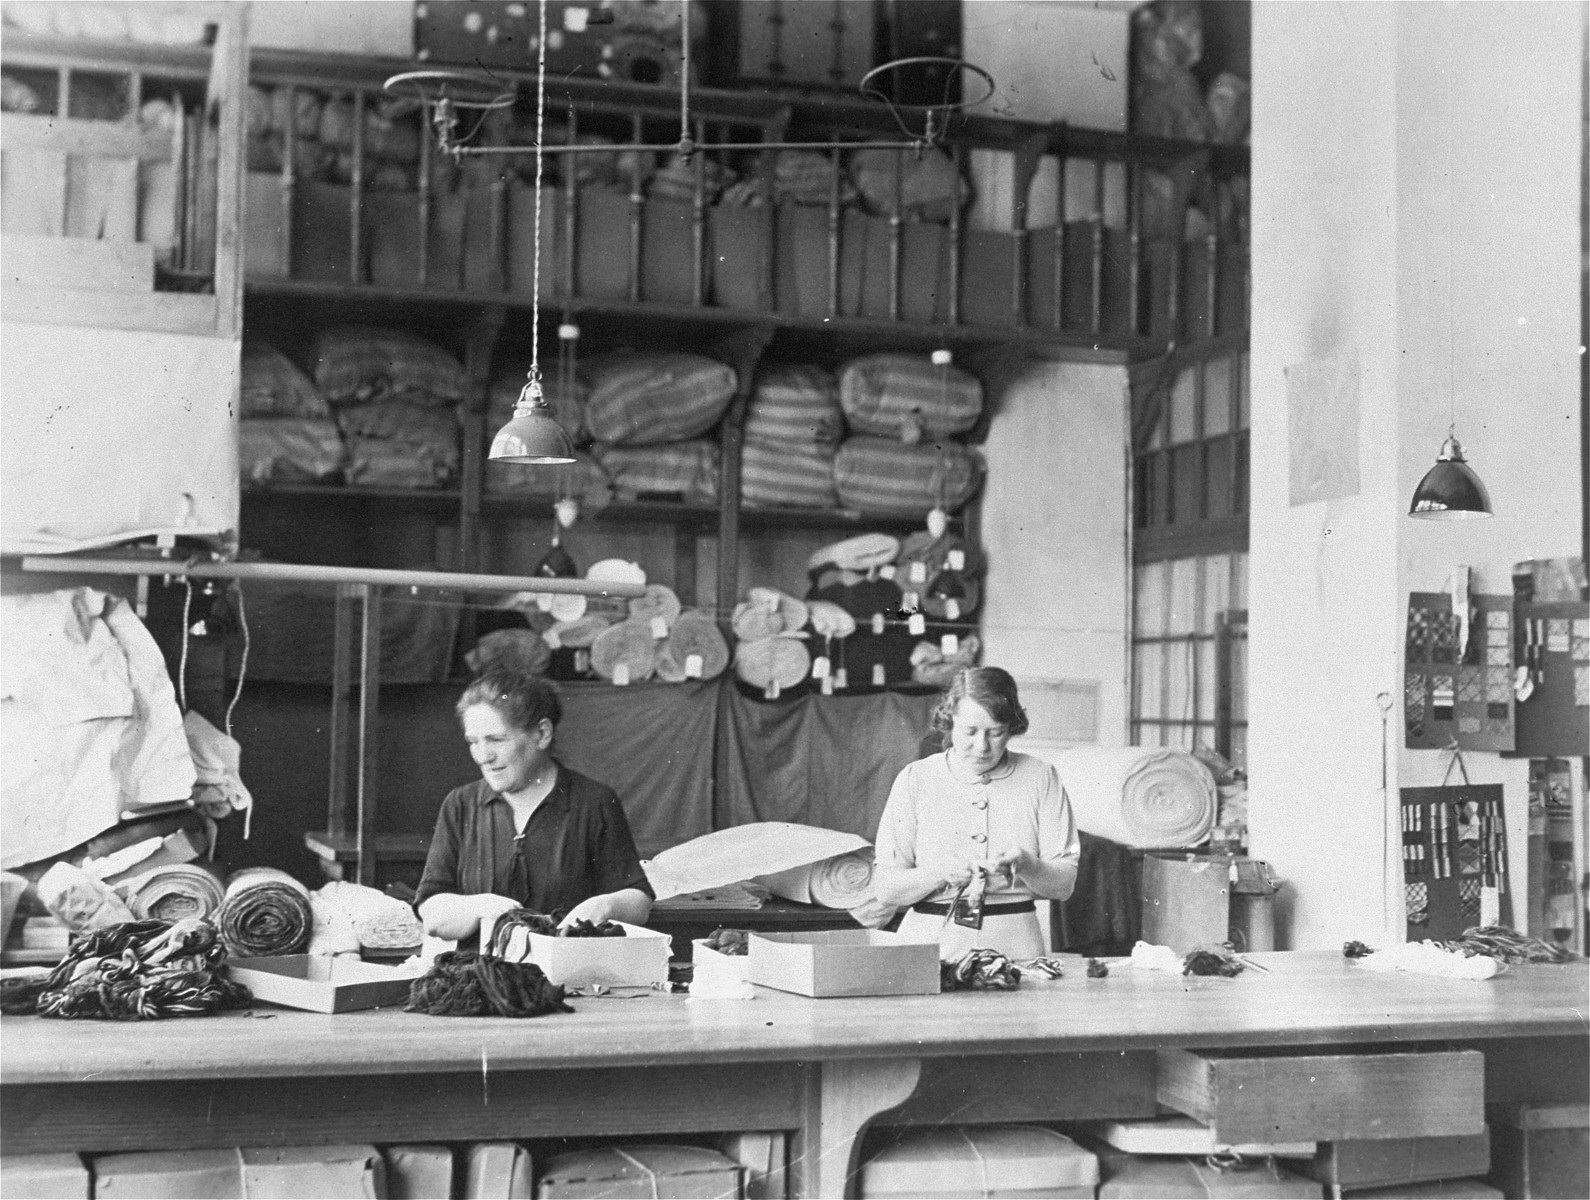 Women at work in a Jewish-owned textile mill in Vienna.   Among those pictured is the owner, Luise Koenigstein, the donor's mother-in-law.